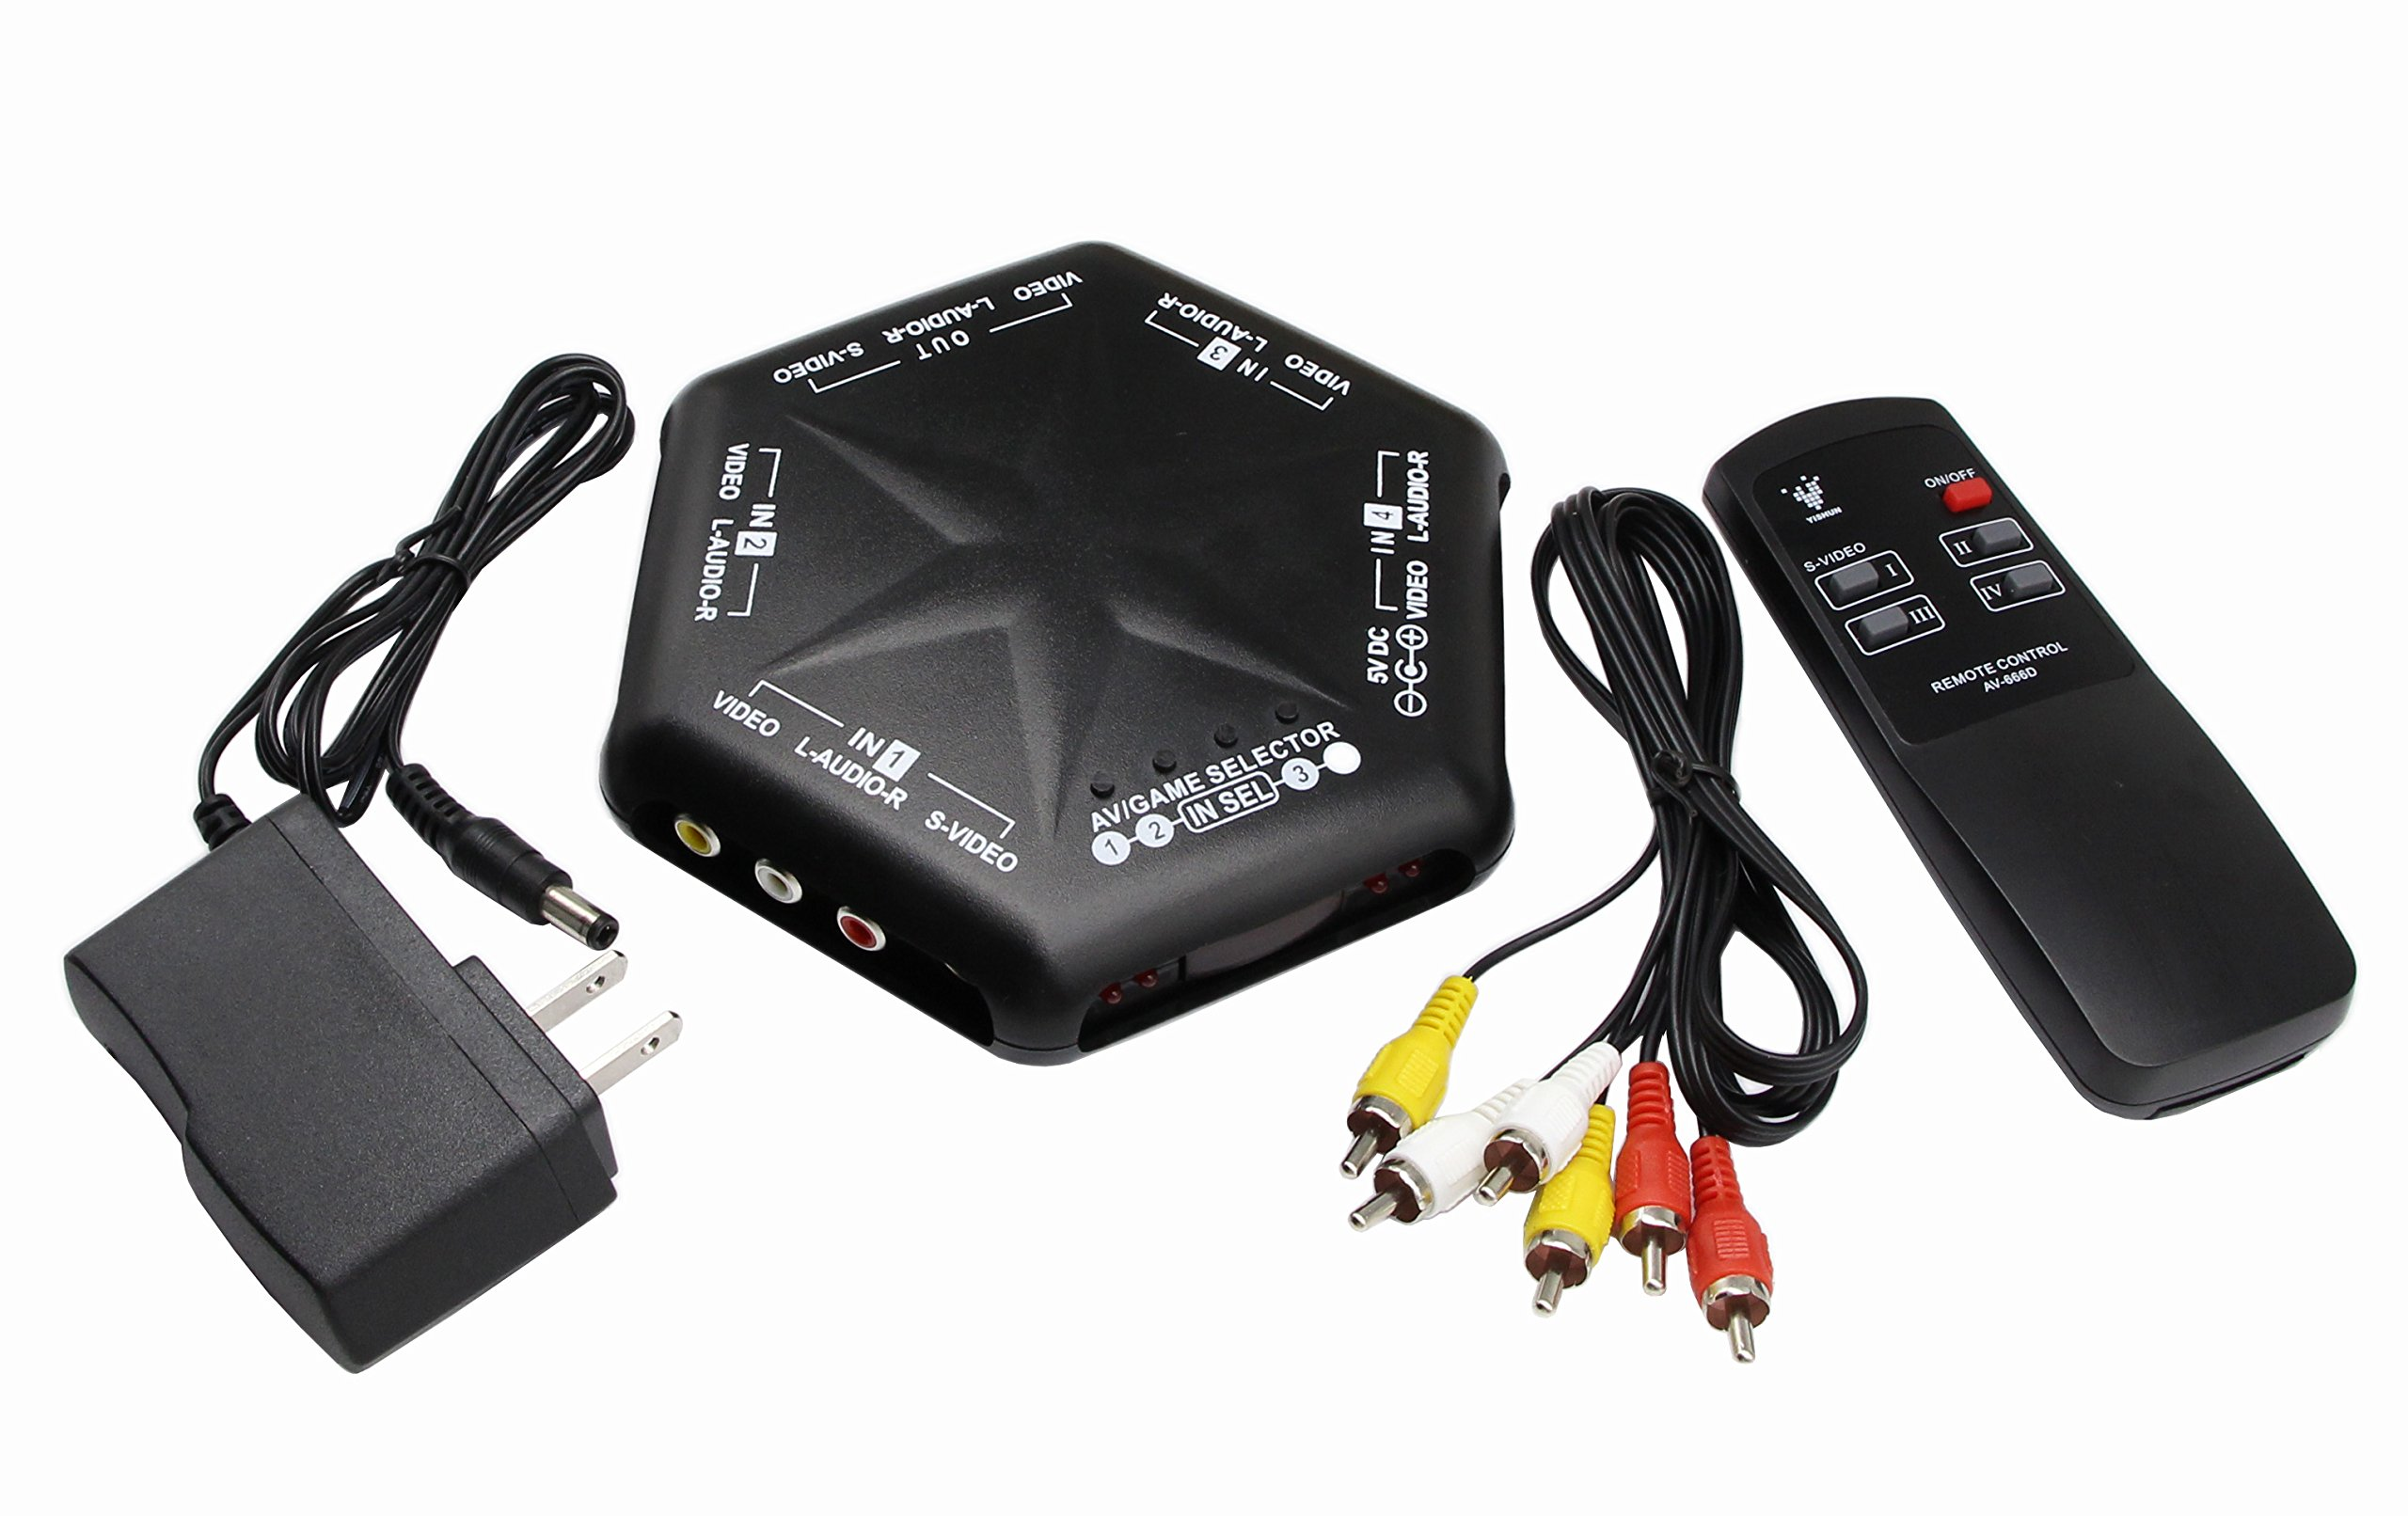 RCA Splitter with 4-Way Audio Video,4 Port Input 1 Output Audio Video AV RCA Switch 4 Ways Selector Splitter Box for DVD STB Game Consoles (4 in 1 Out- A)